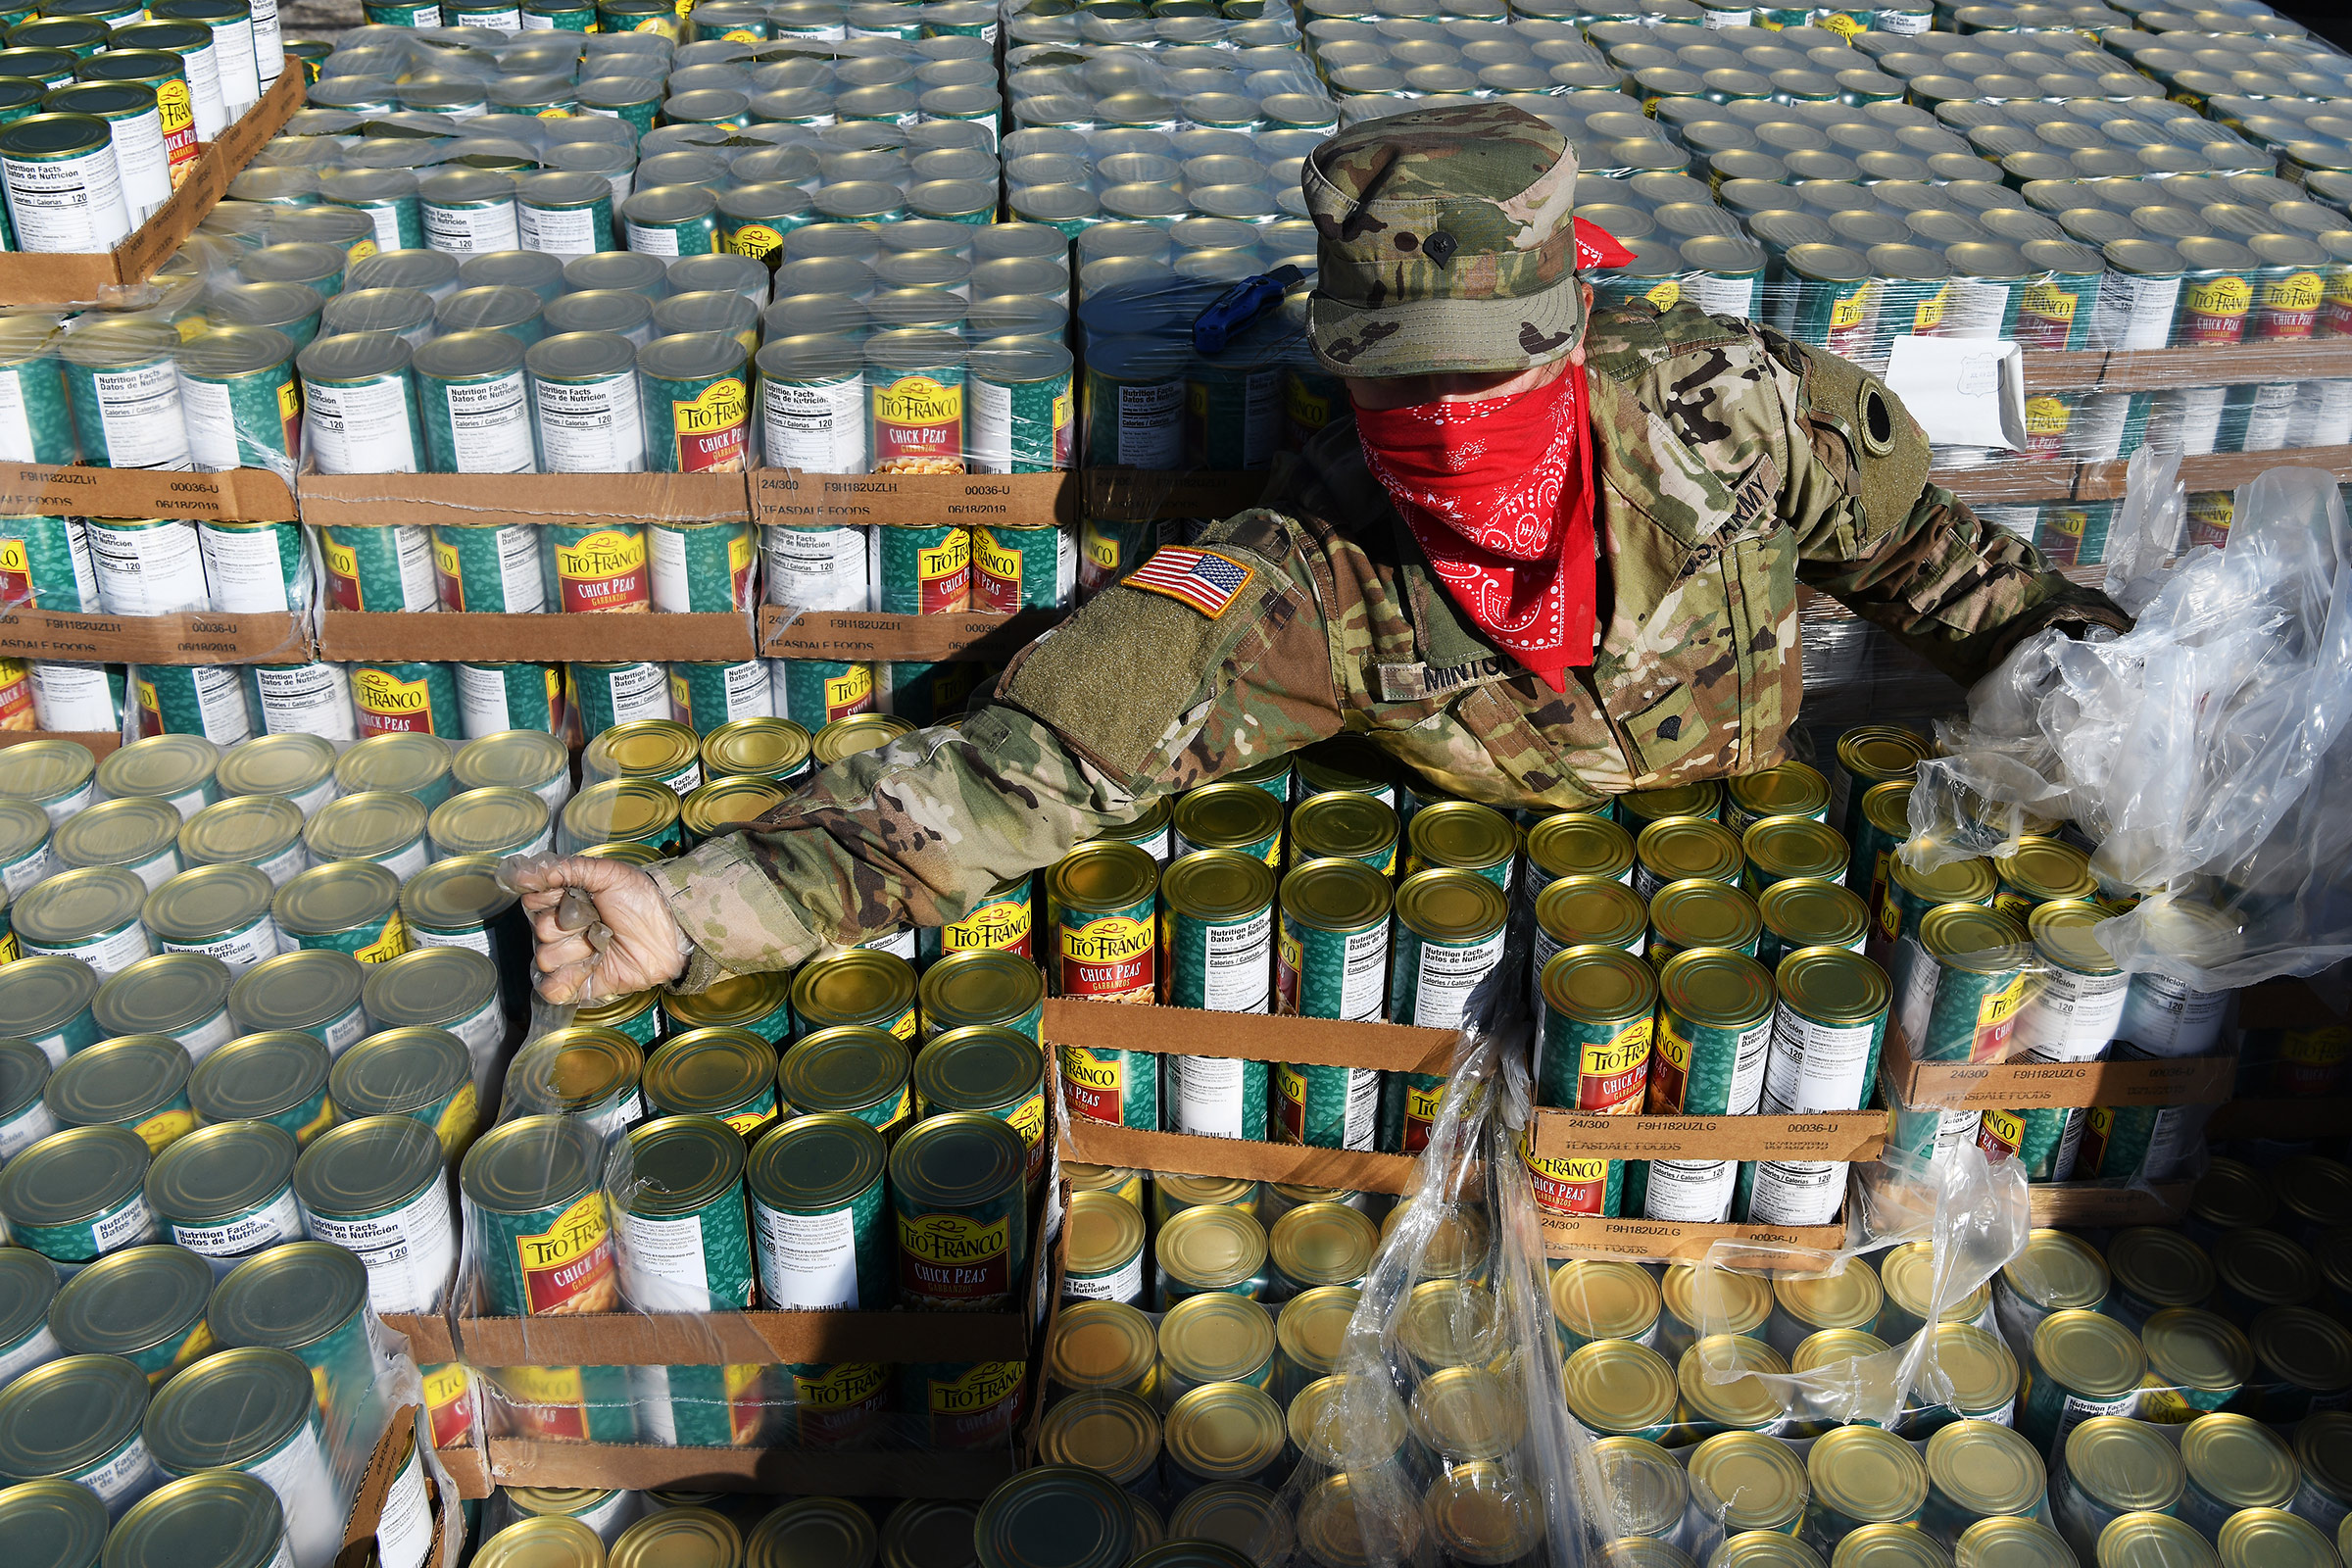 U.S. Army Spc. Rose Minton unpacks pallets of food at Wright State University's Nutter Center in Fairborn, Ohio, on April 21, 2020.